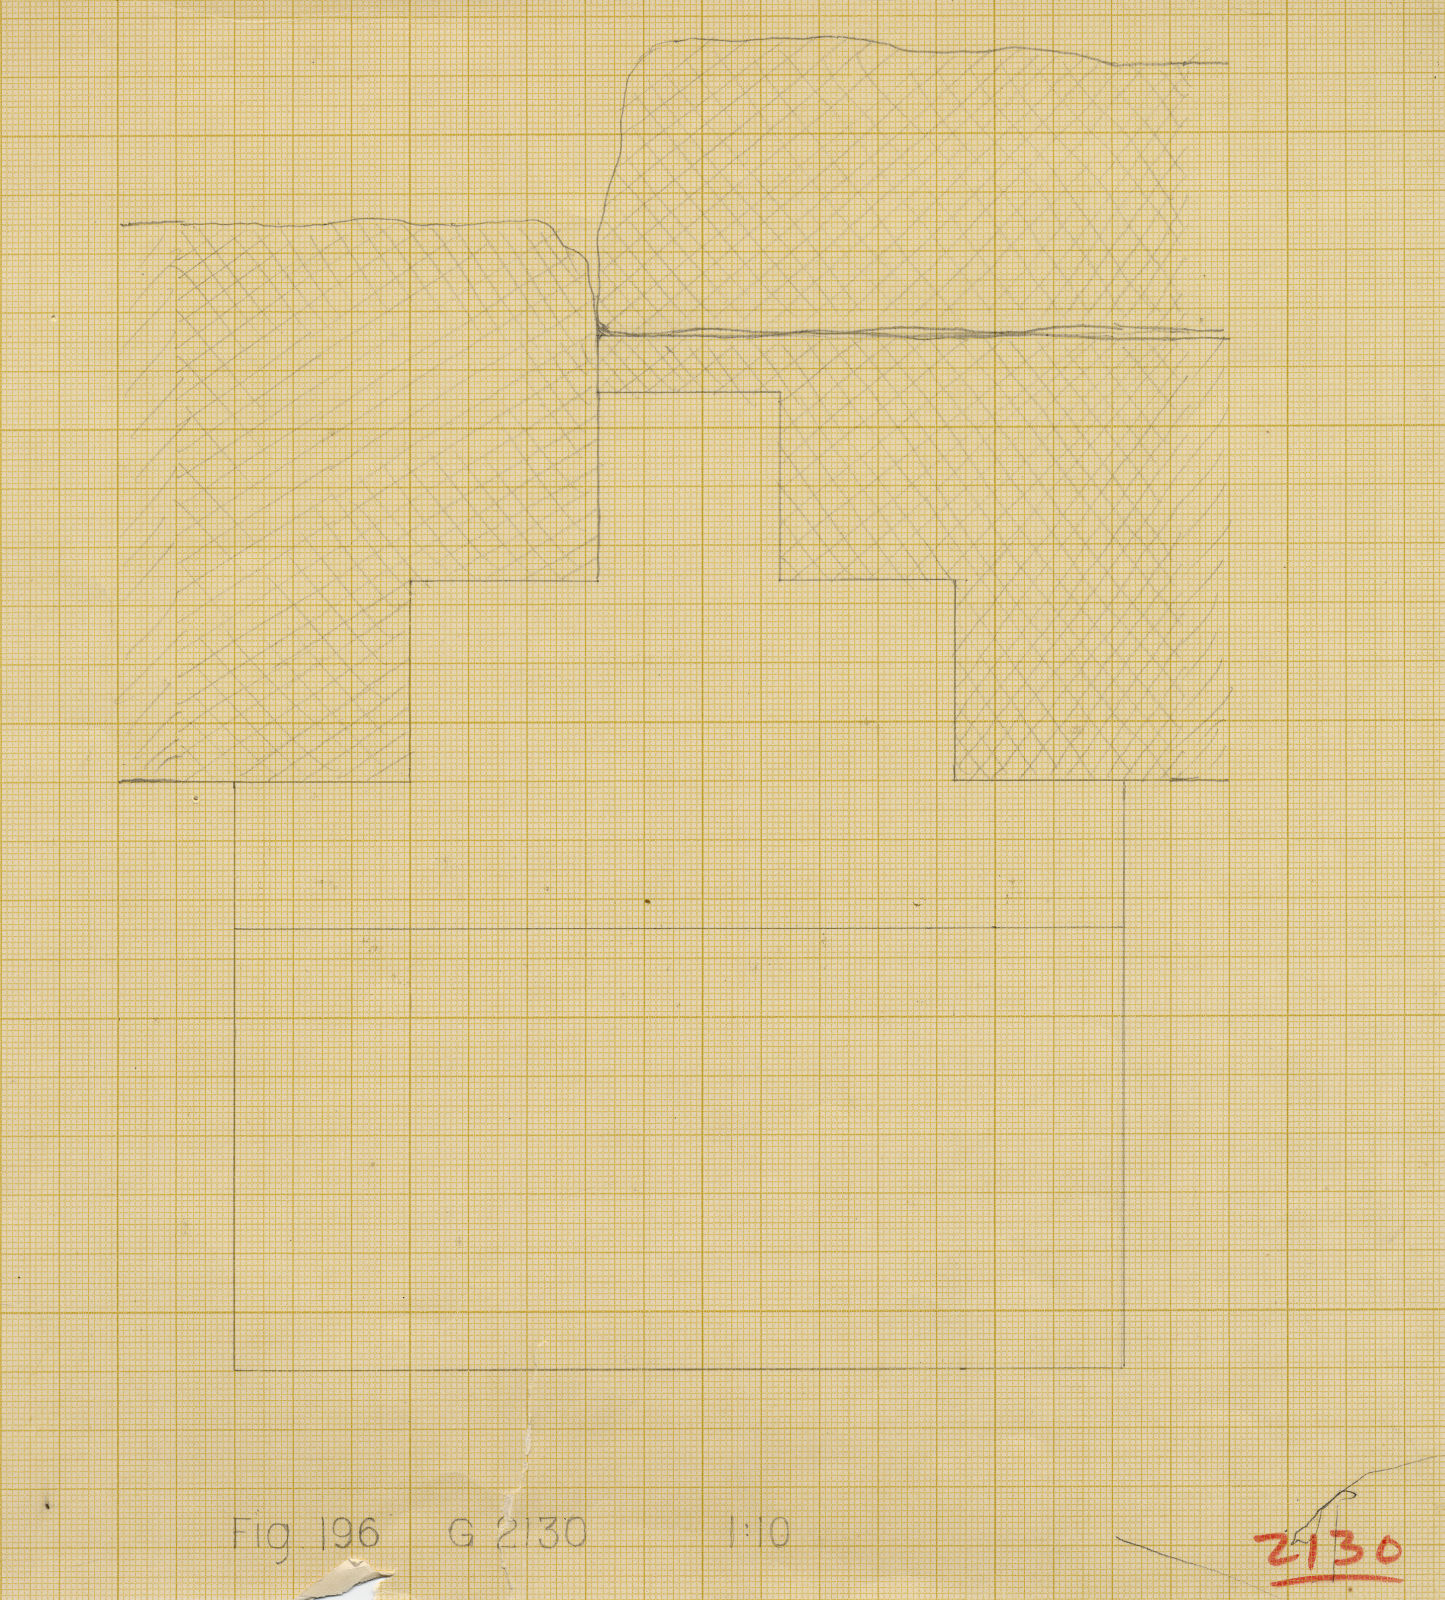 Maps and plans: G 2130, Plan of niche